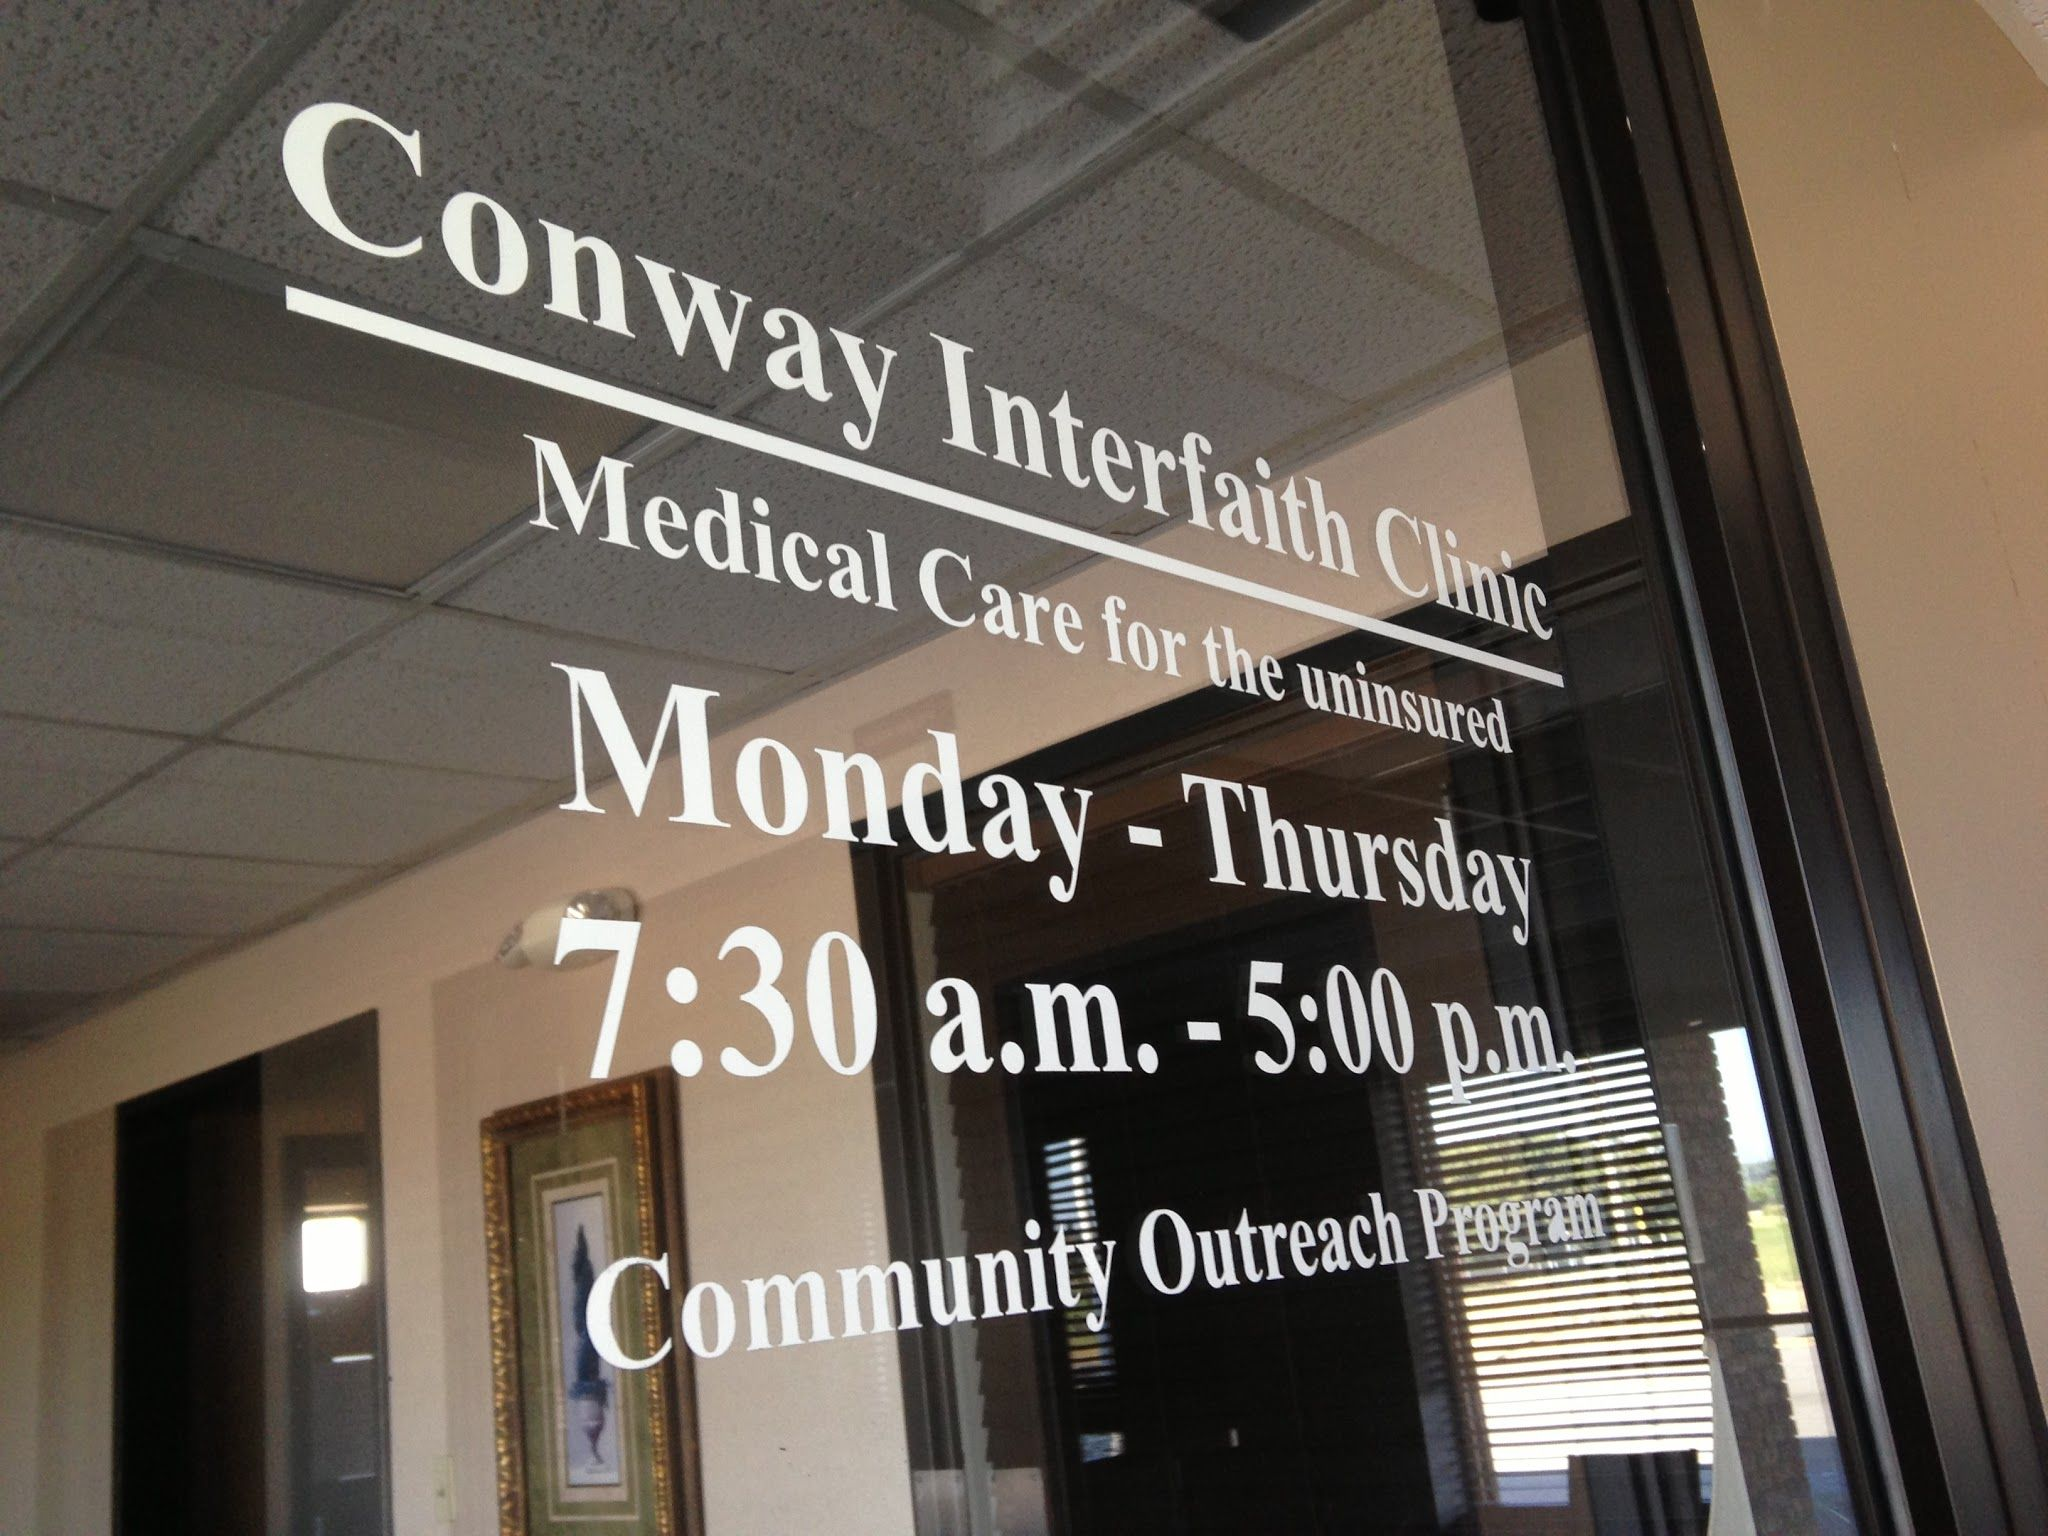 Conway Interfaith Clinic